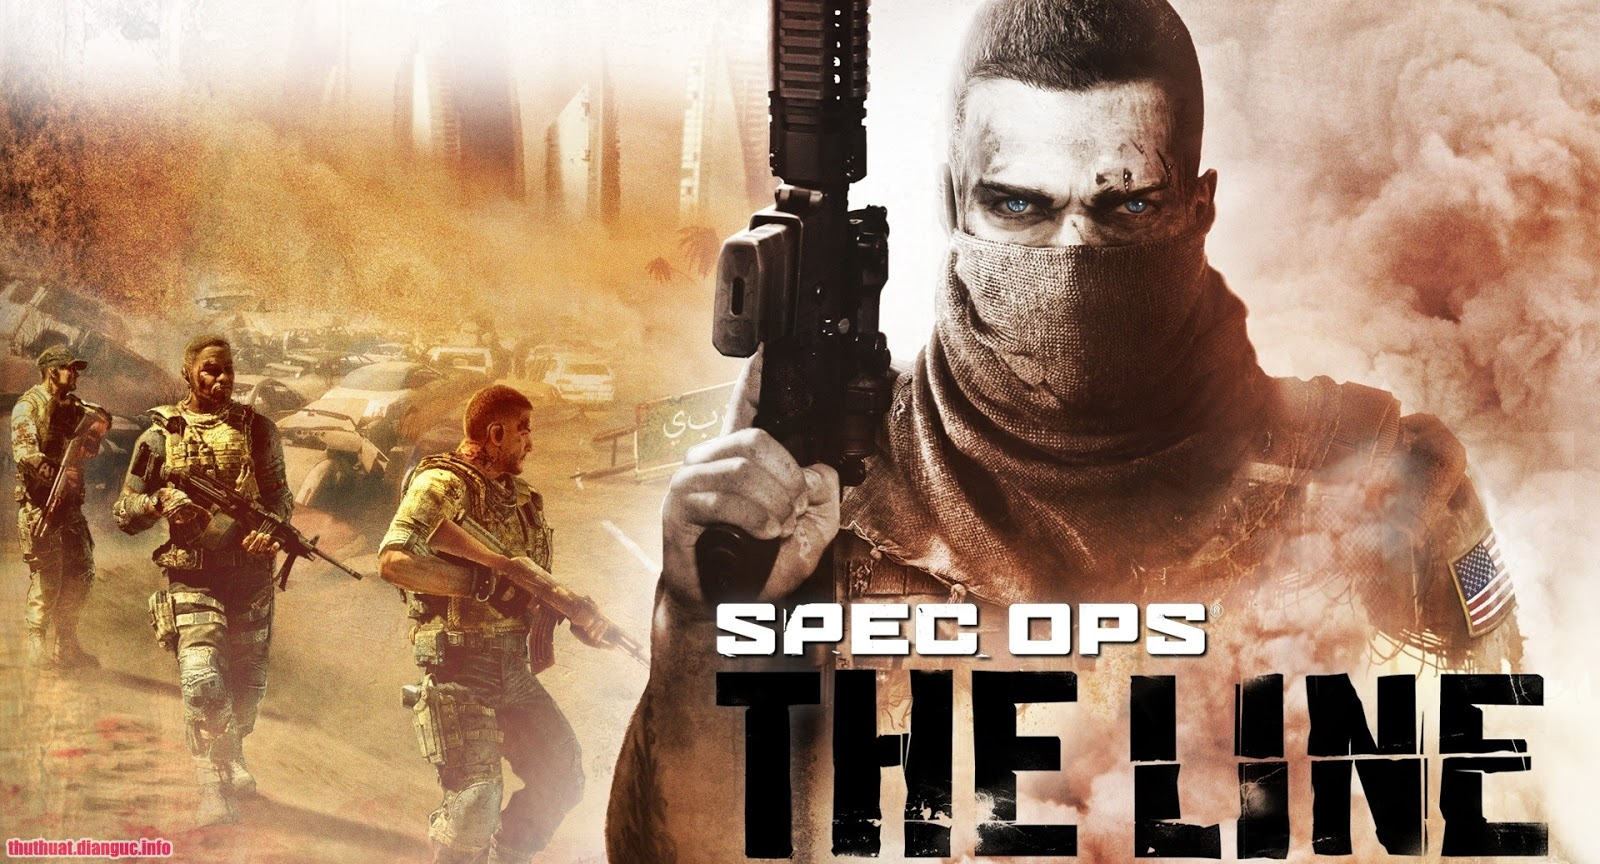 tie-mediumDownload Game Spec Ops The Line SKIDROW Fshare